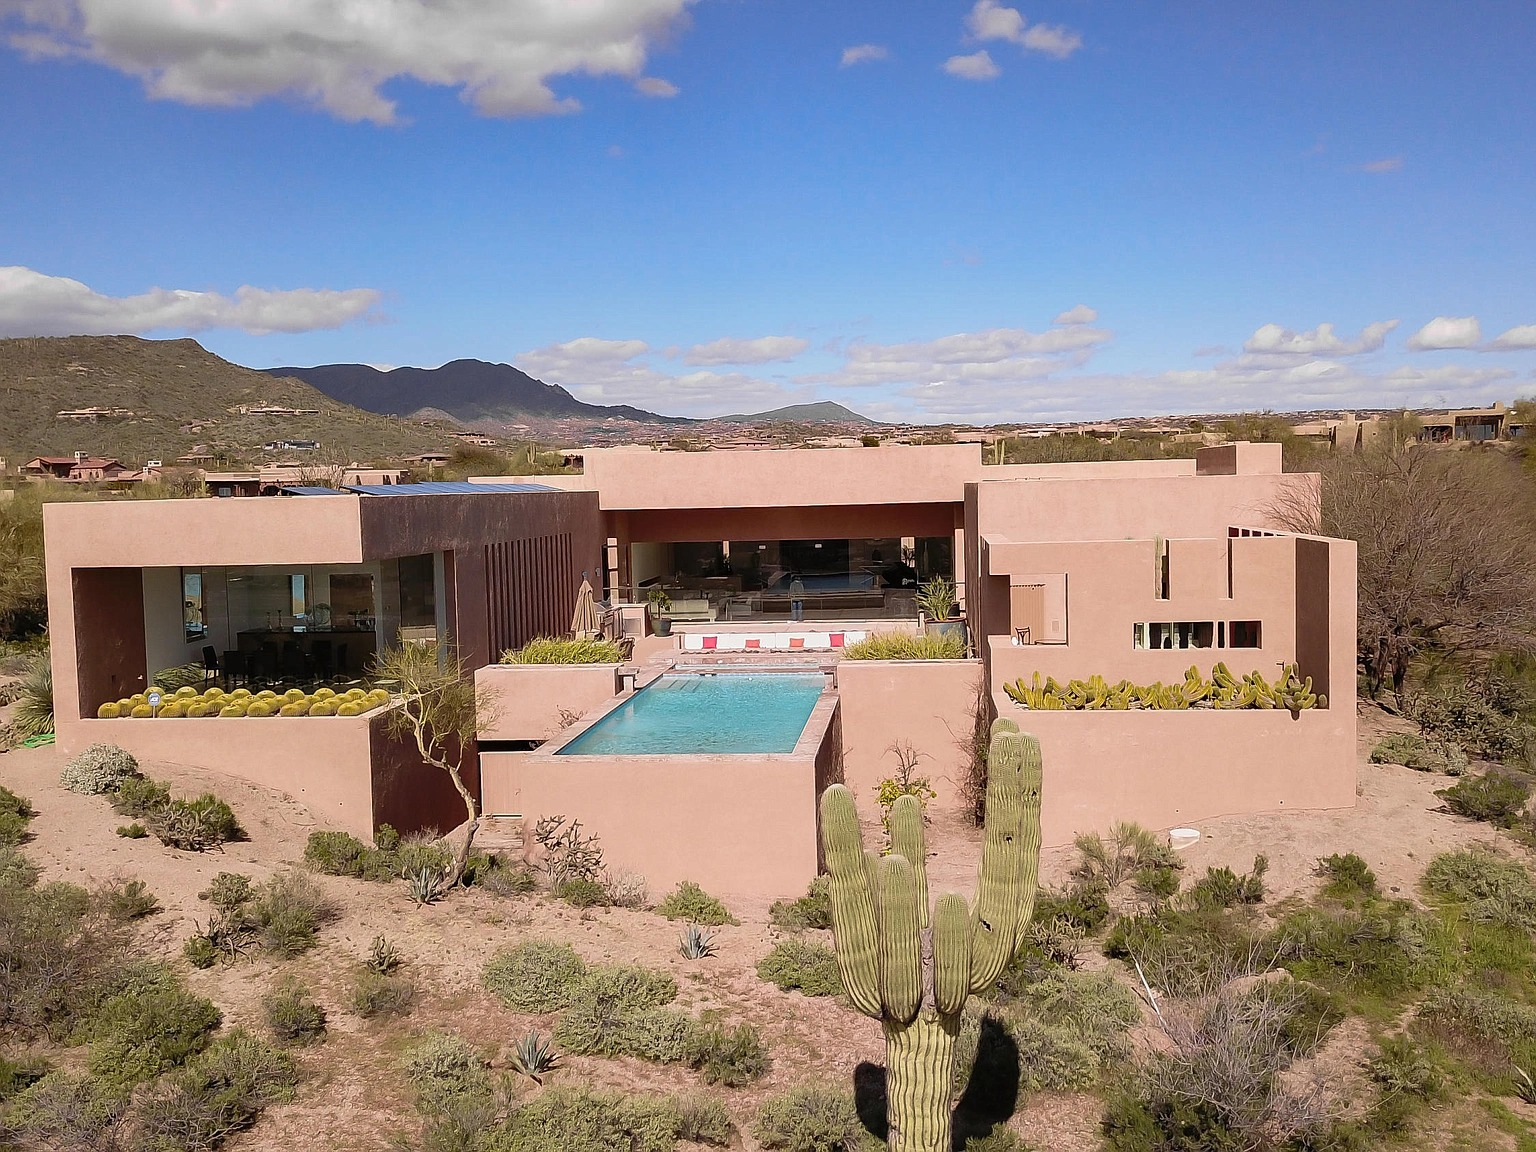 9191 E Happy Hollow Dr, Scottsdale, AZ 85262 - $3,975,000 home for sale, house images, photos and pics gallery